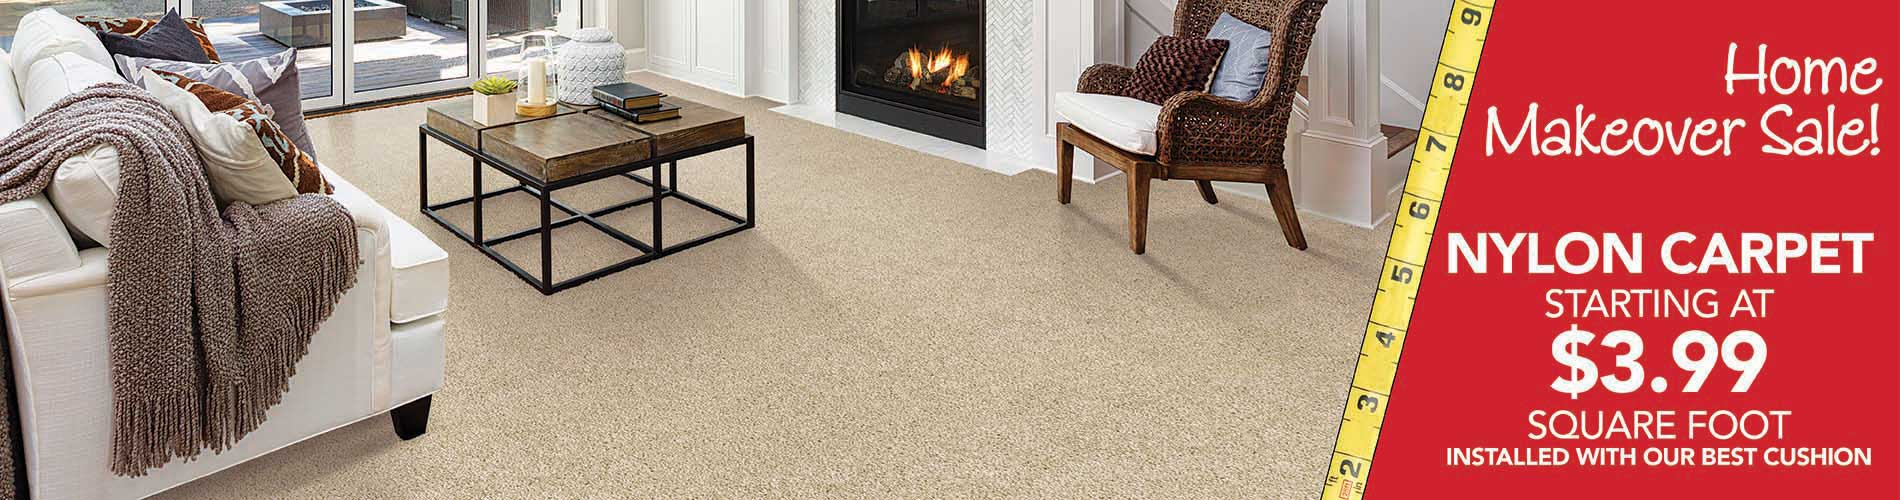 Nylon Carpet starting at $3.99 sq.ft. during our home makeover sale at bell Carpet & Floors in wichita